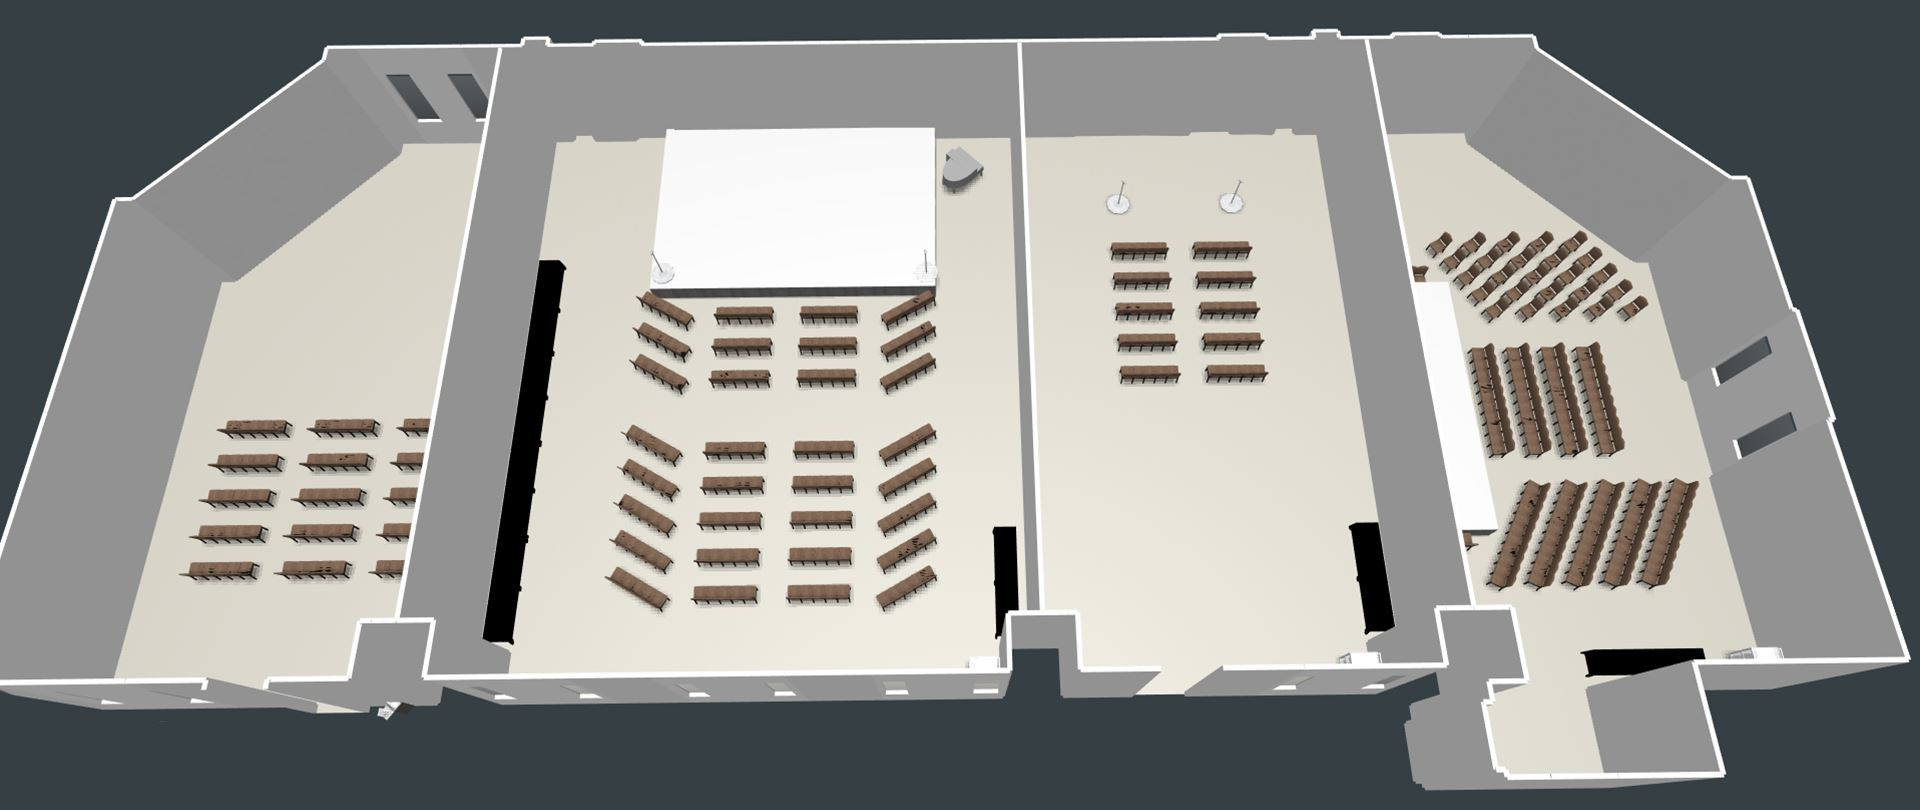 3D View of the Conference Center divided into 4 rooms